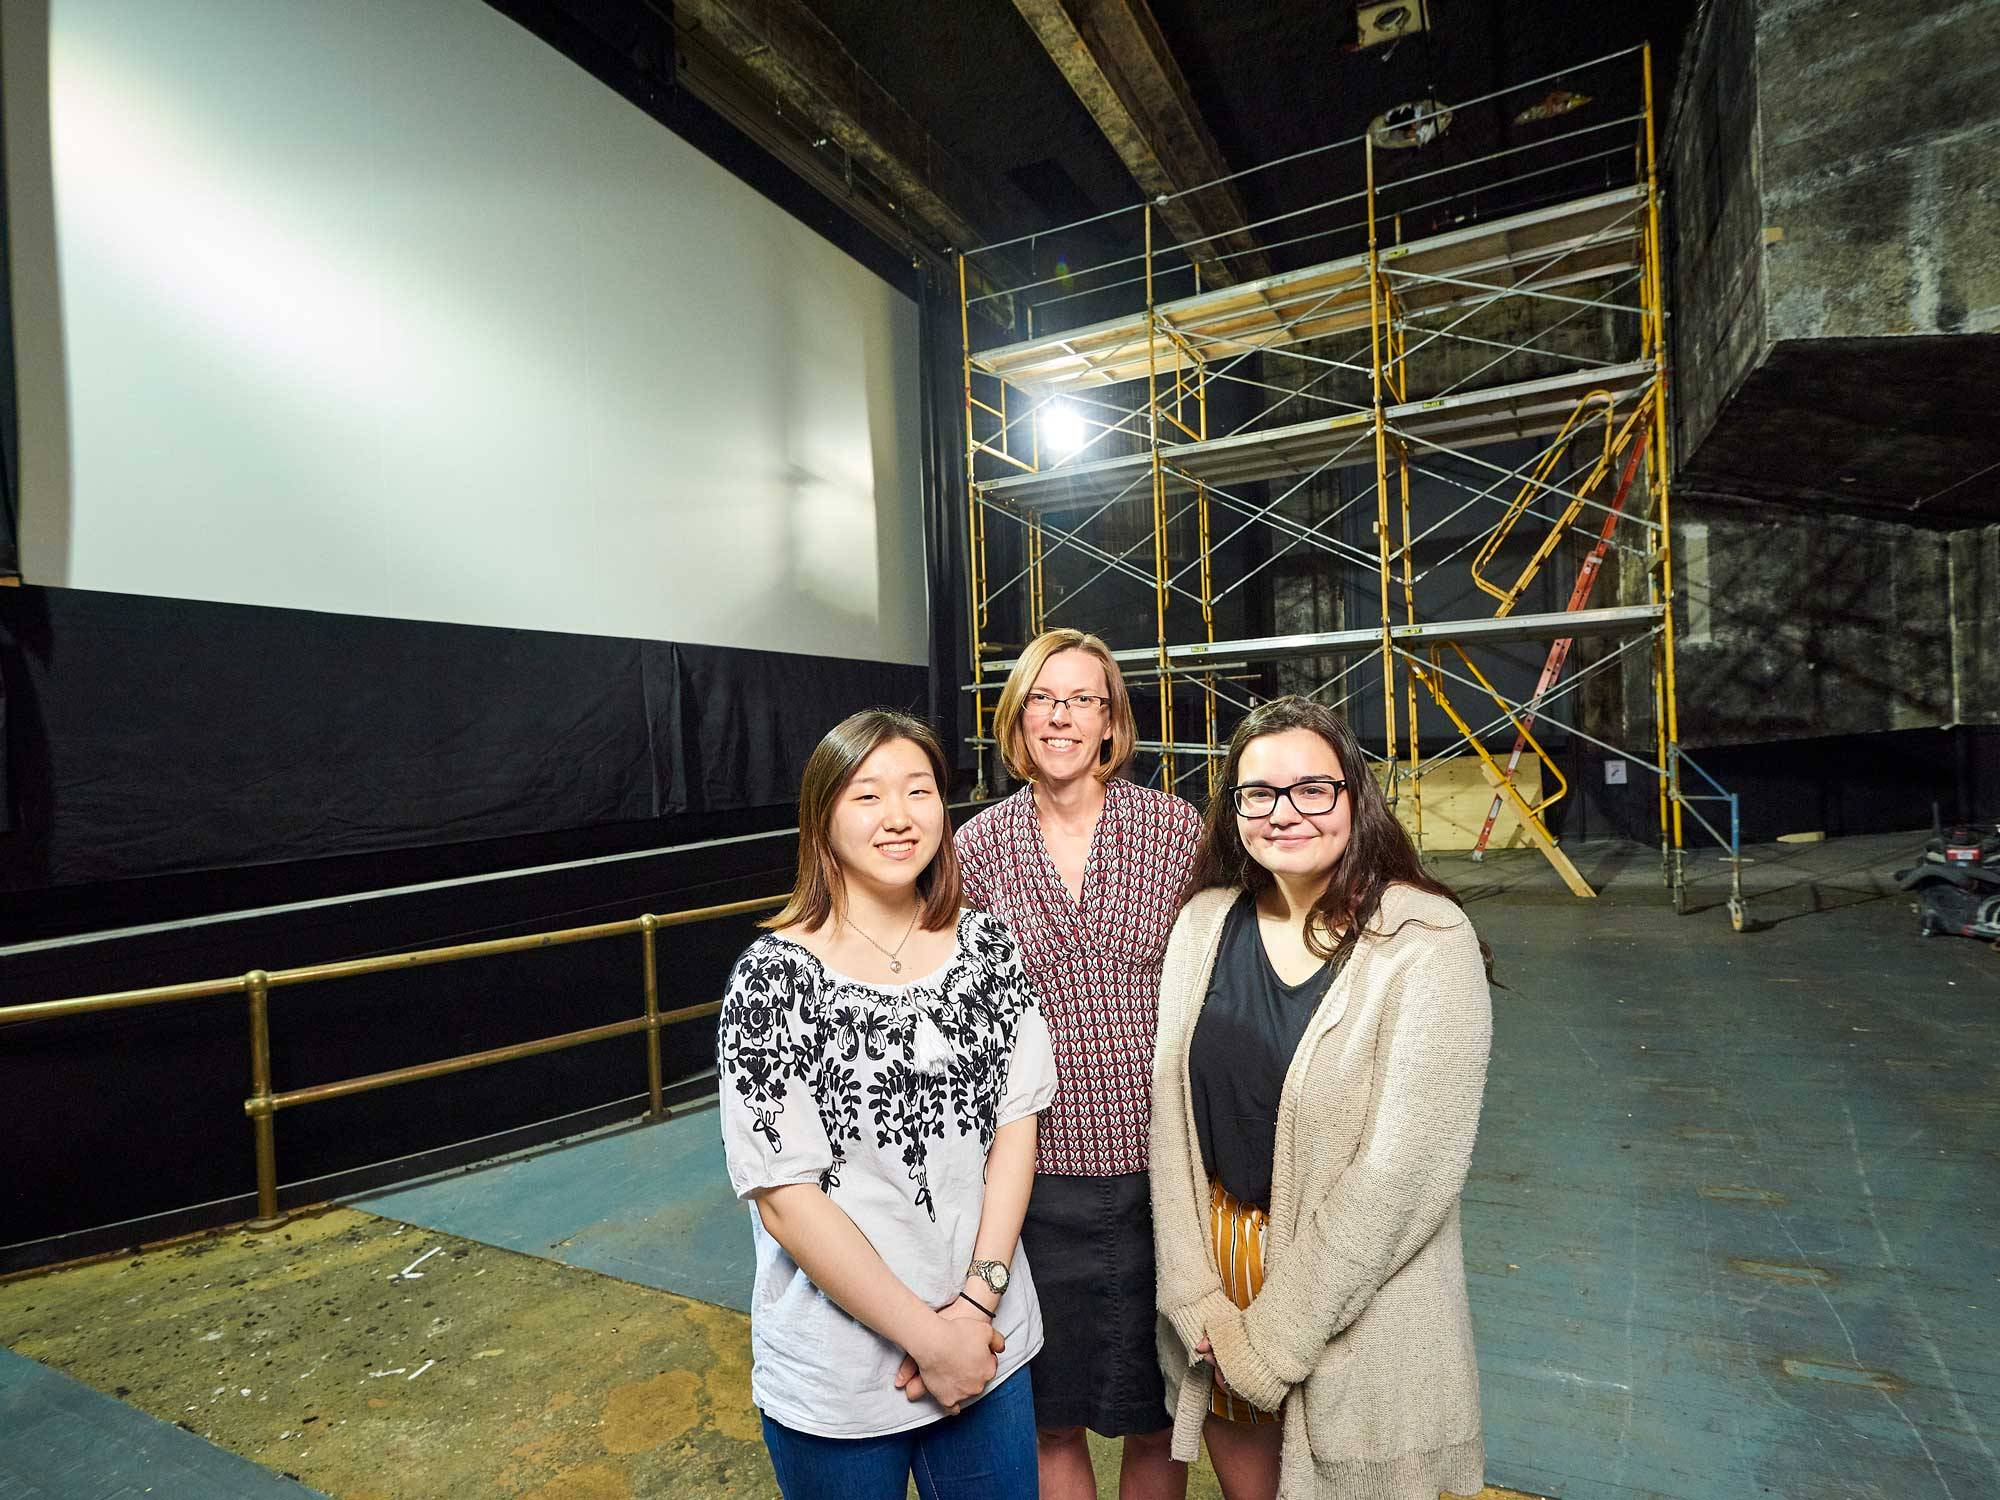 Chloe You '22, Associate Professor Mary Simonson, and Molly Adelman '21 stand in the Hamilton Theater during its renovation